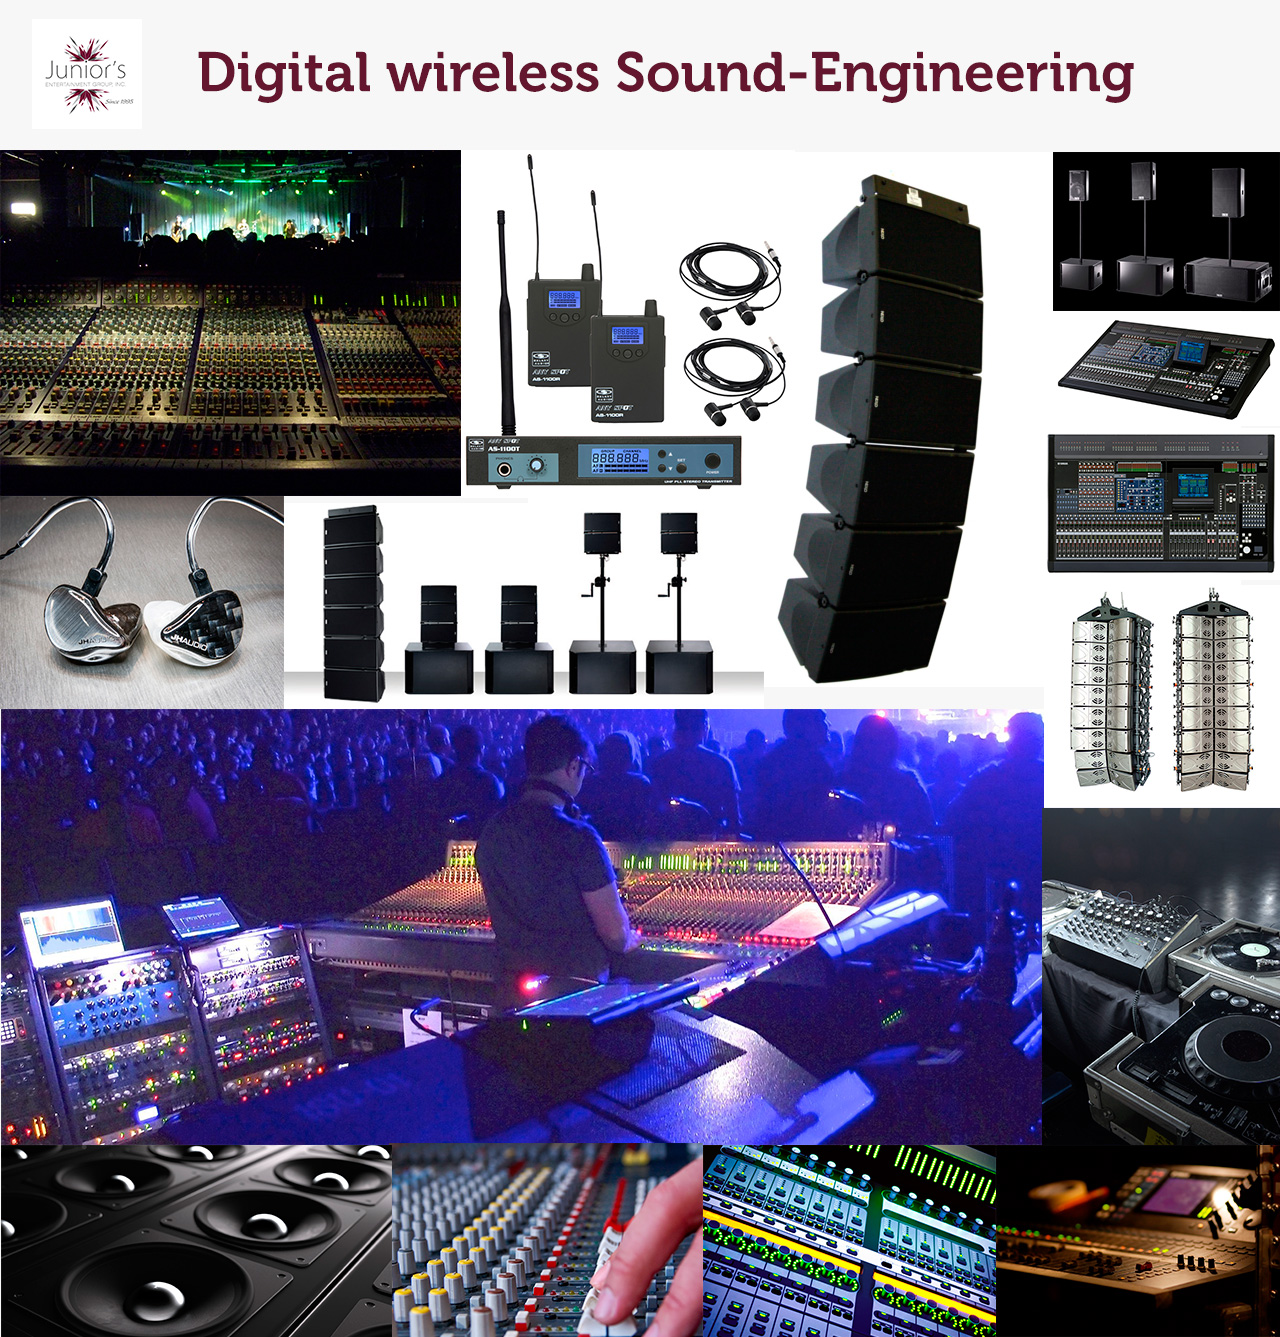 State-of-the-art wireless Sound Systems with latest technology operated by Top Sound Engineers